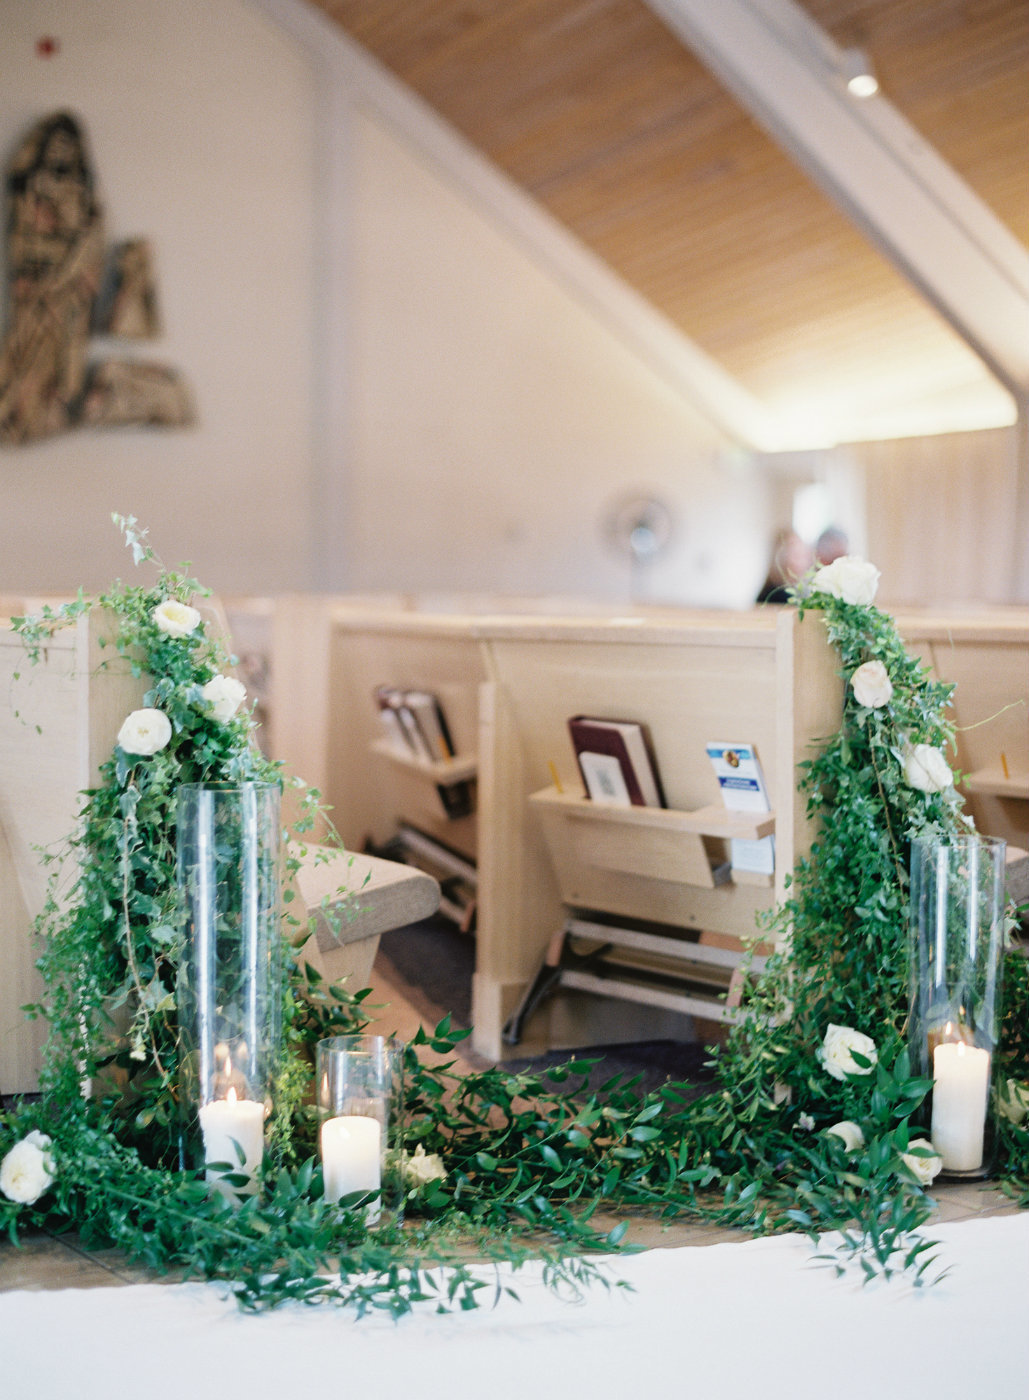 Church wedding ceremony pew greenery vines  and rose.